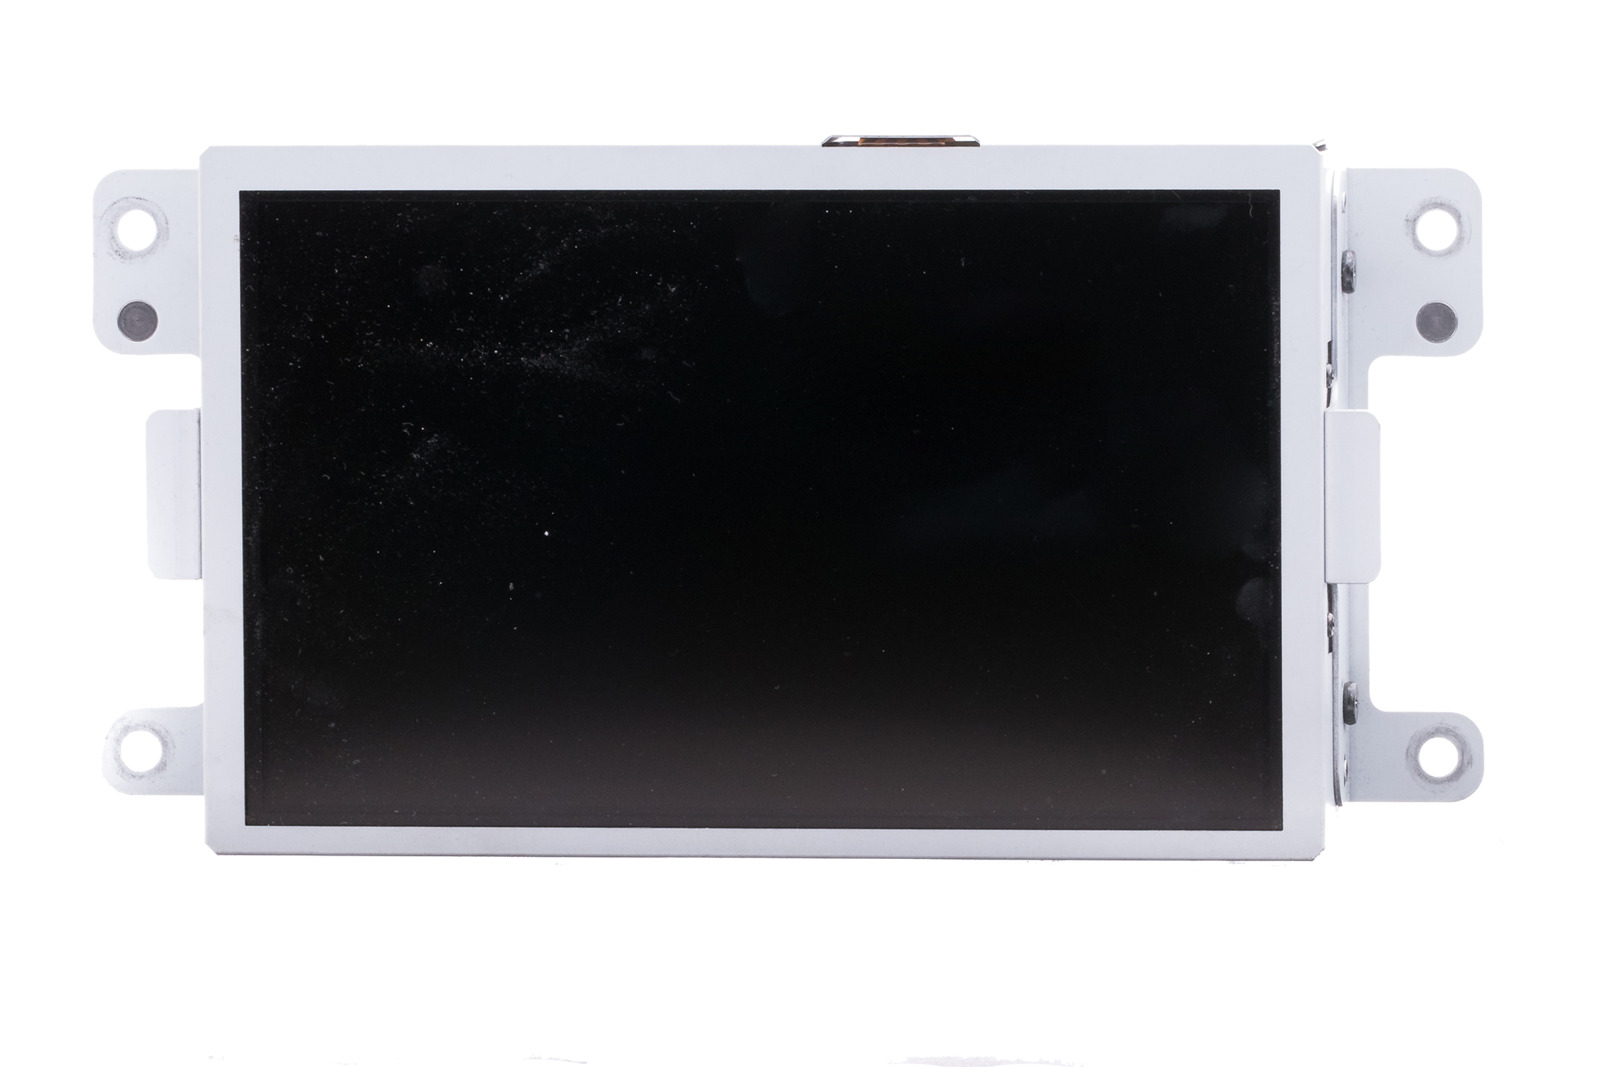 Navigation Ford Mustang 2015 Touch screen display & Sync2 Module GPS